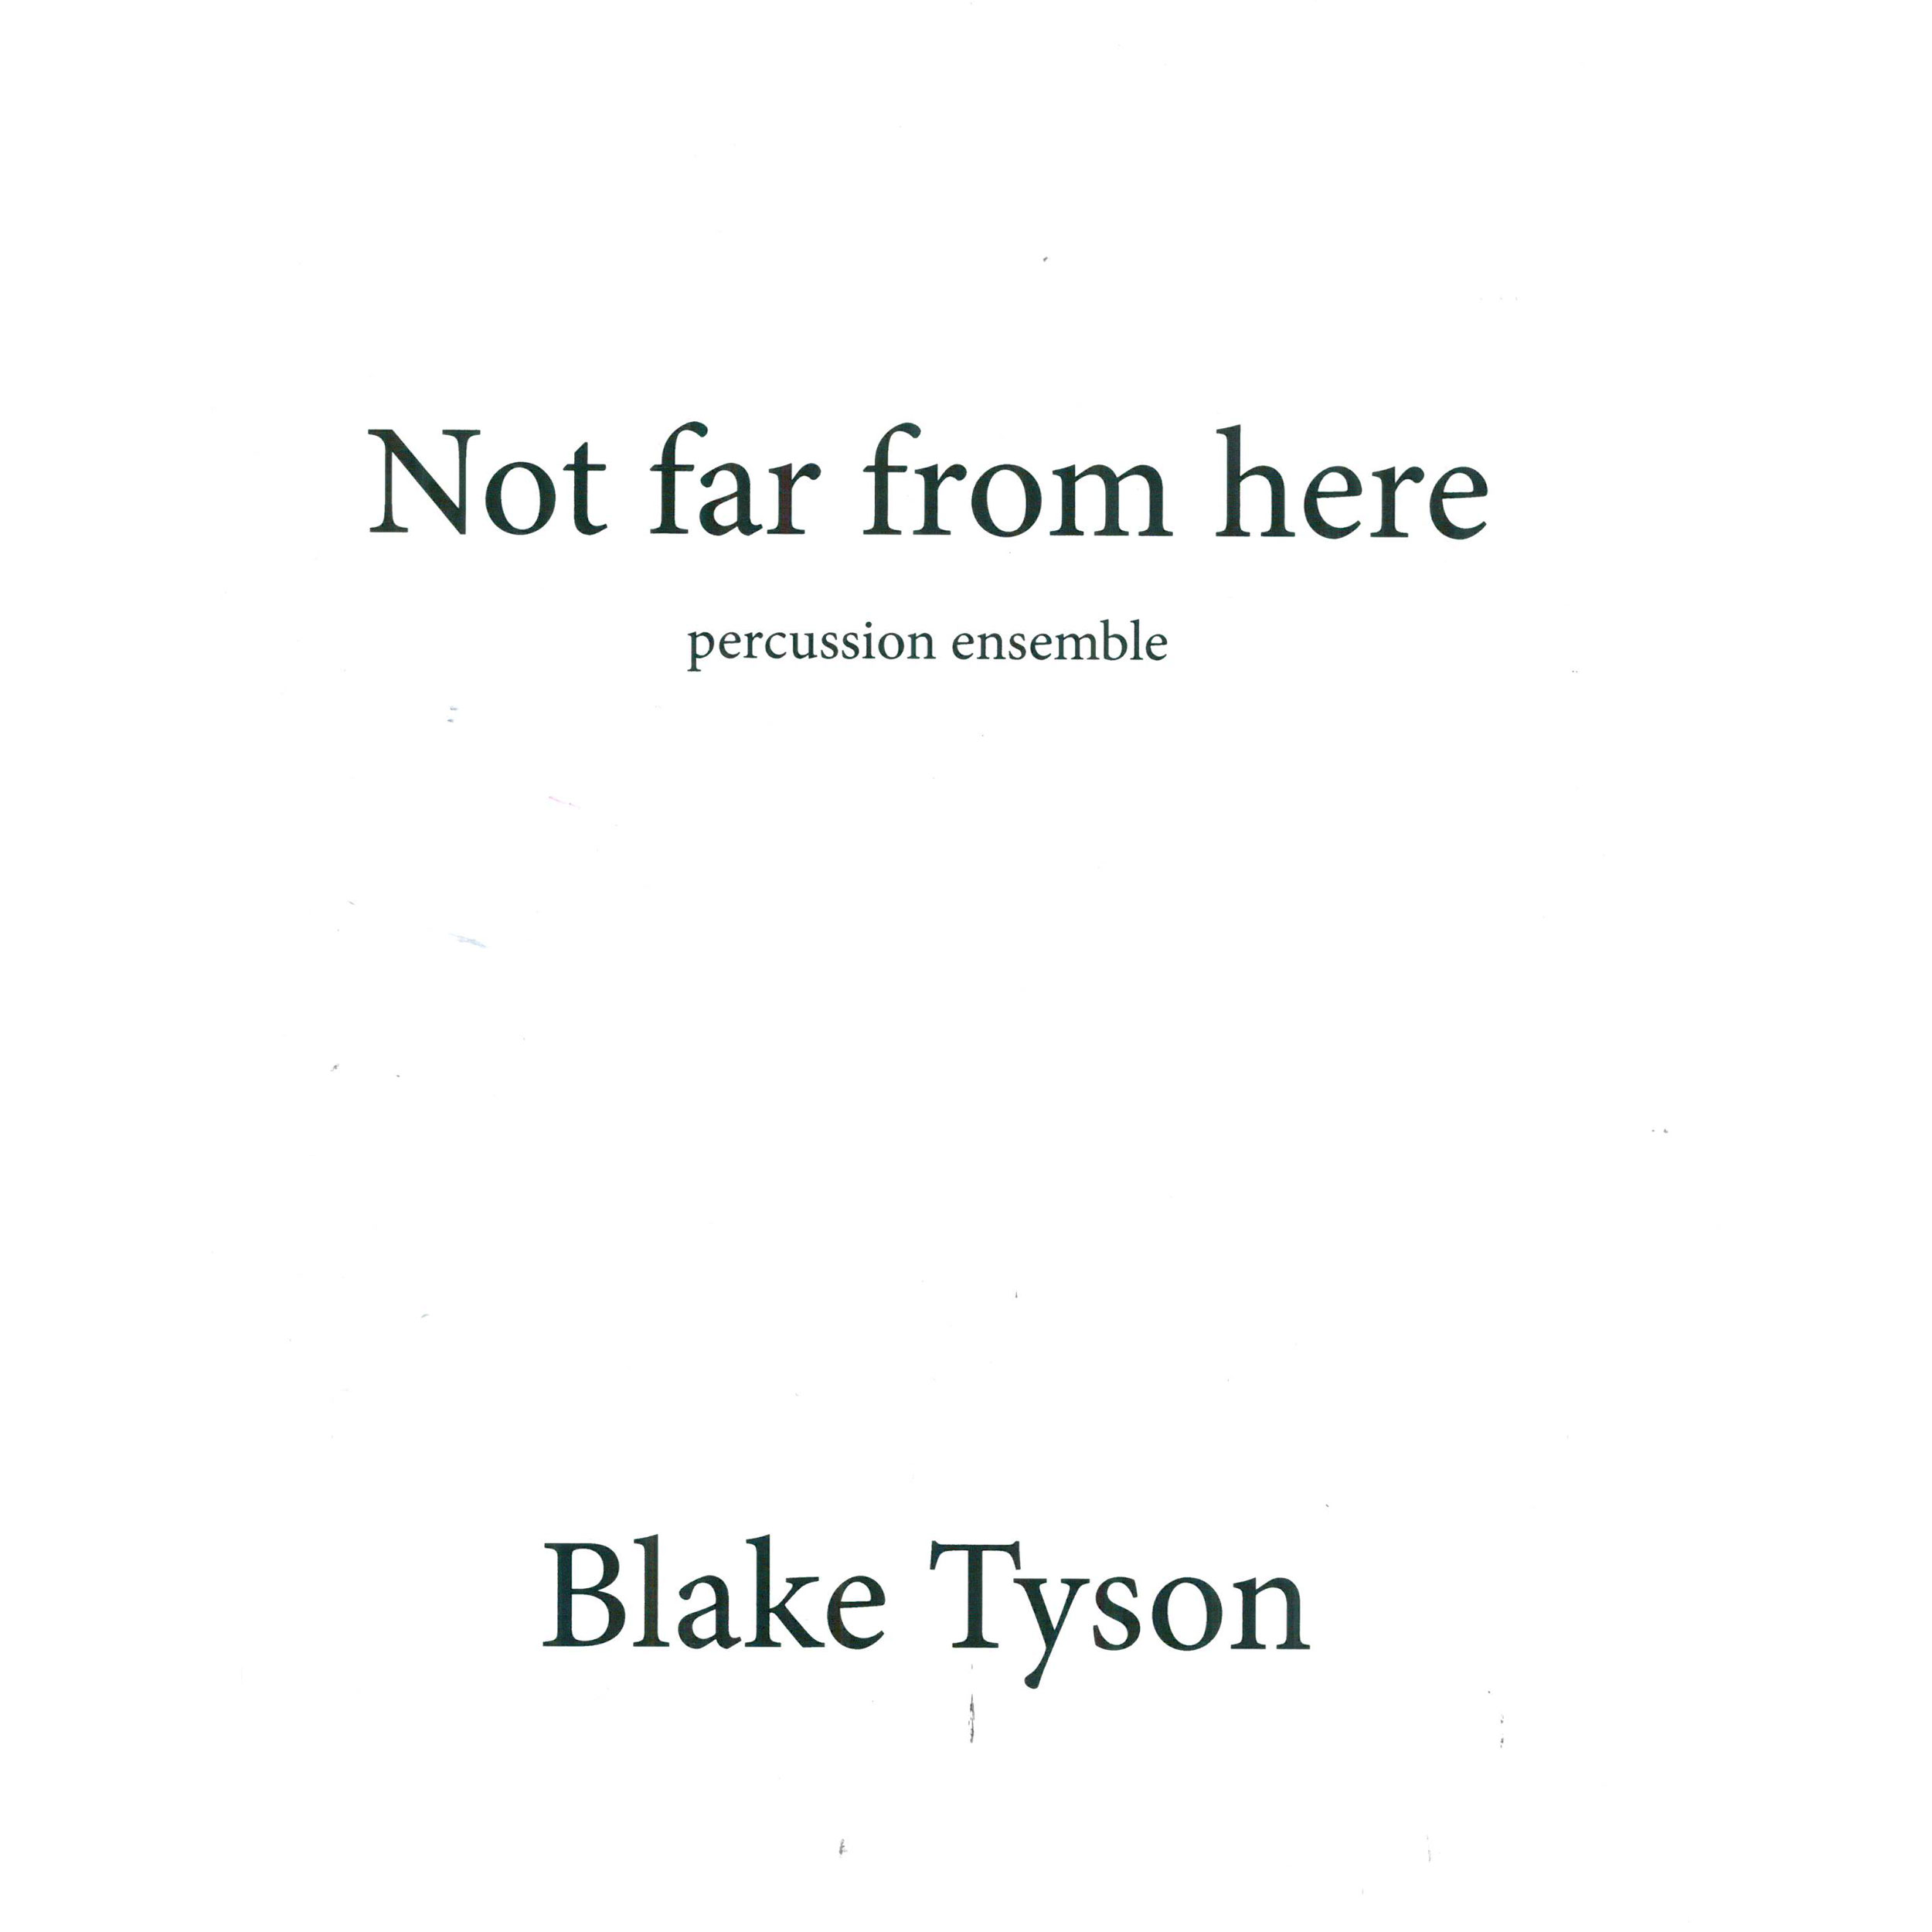 Not far from here (Percussion Ensemble) by Blake Tyson